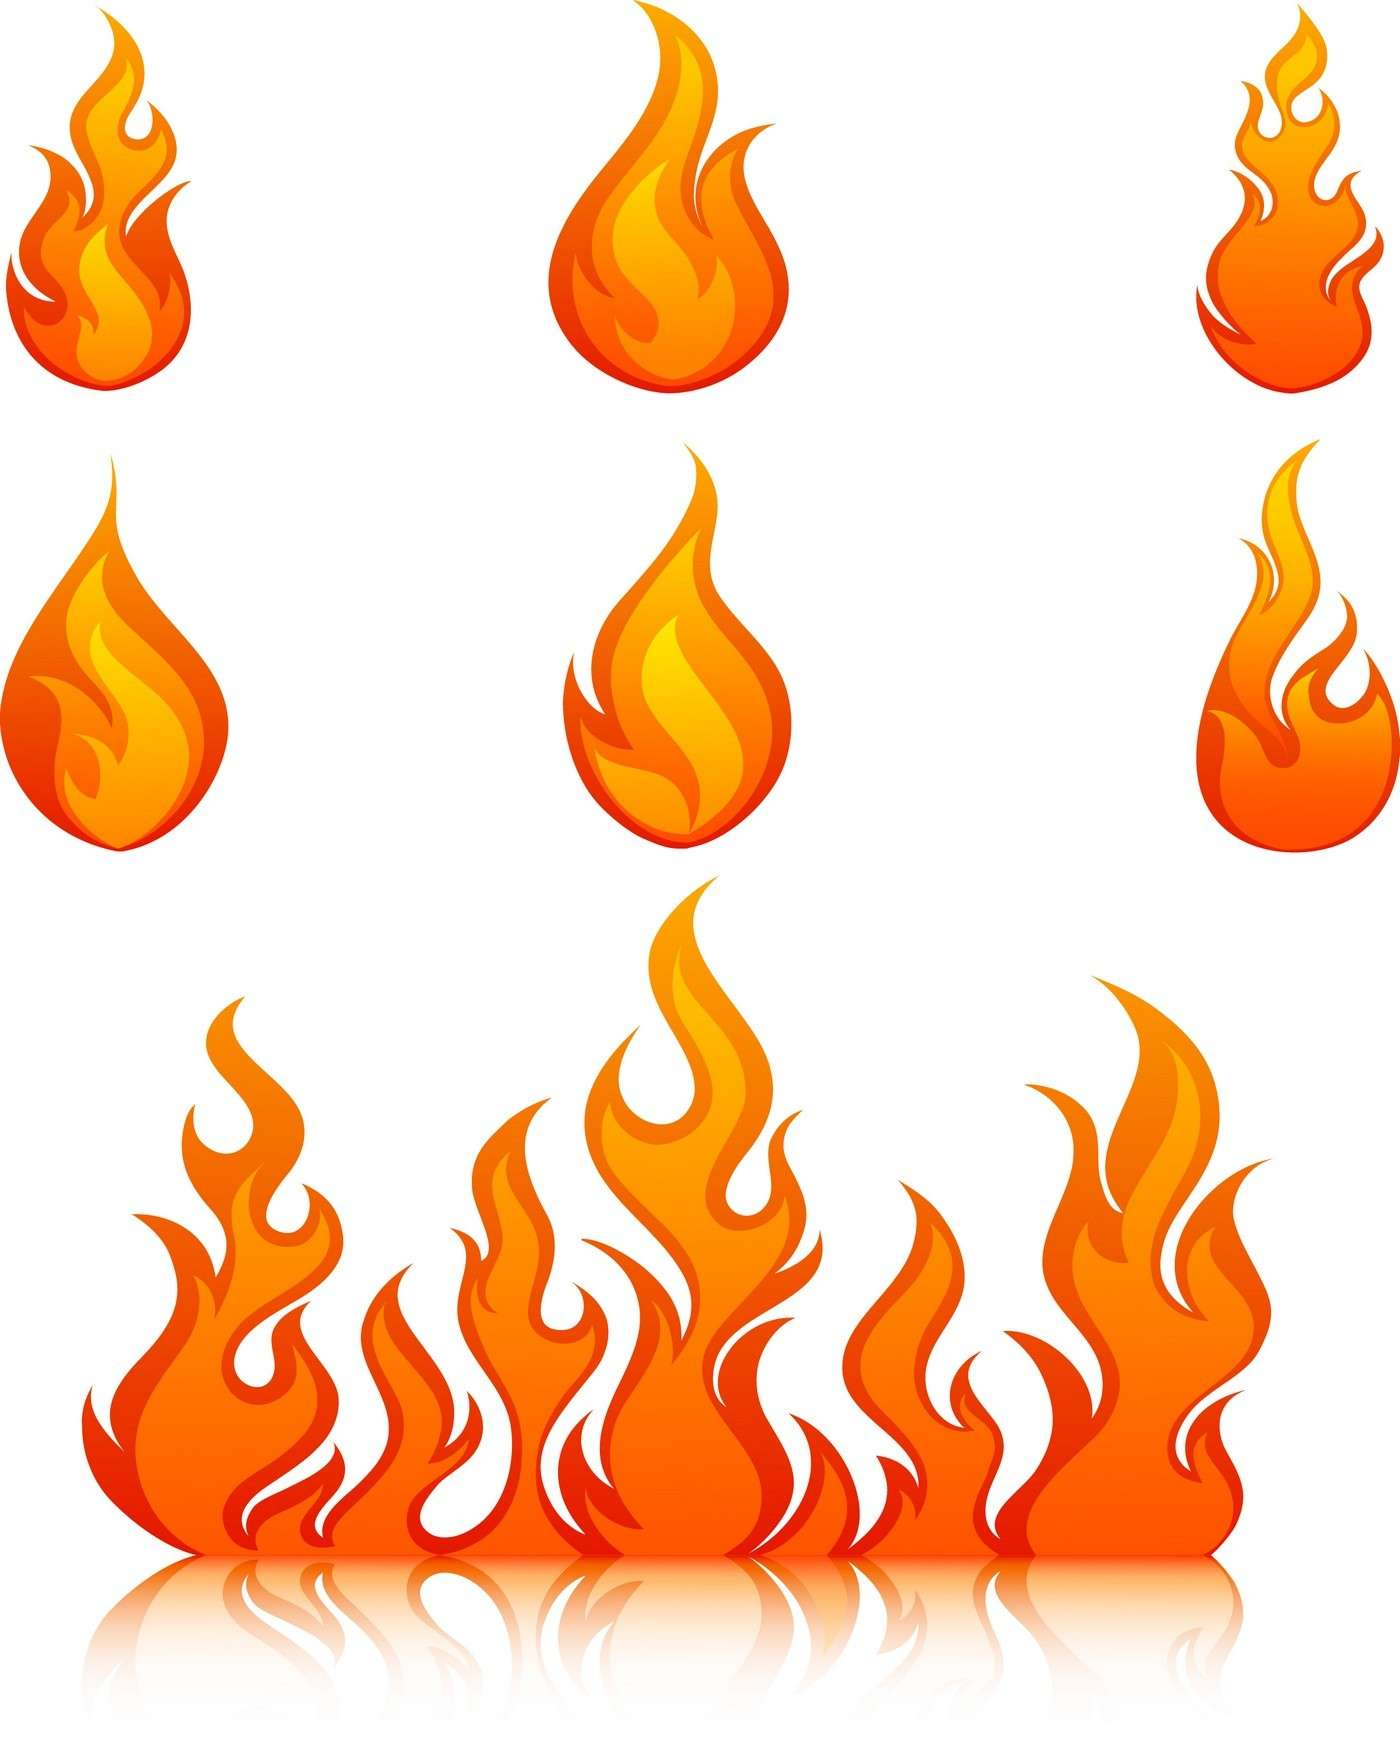 Flame, Fire 03 png